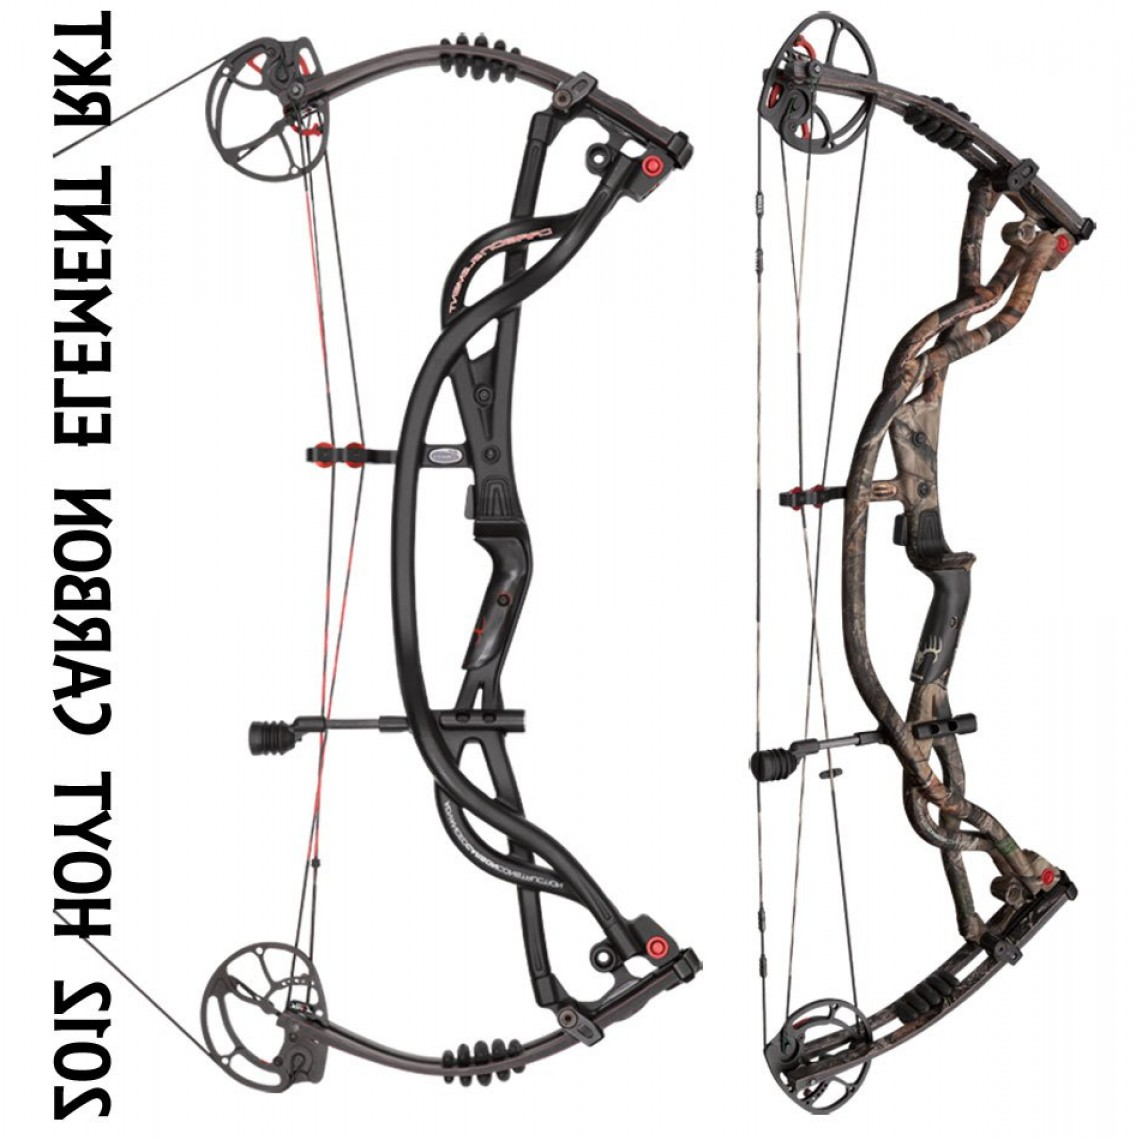 Hoyt Vector Series: Hoyt Vector Turbo Carbon Element Matrix Rkt Cam